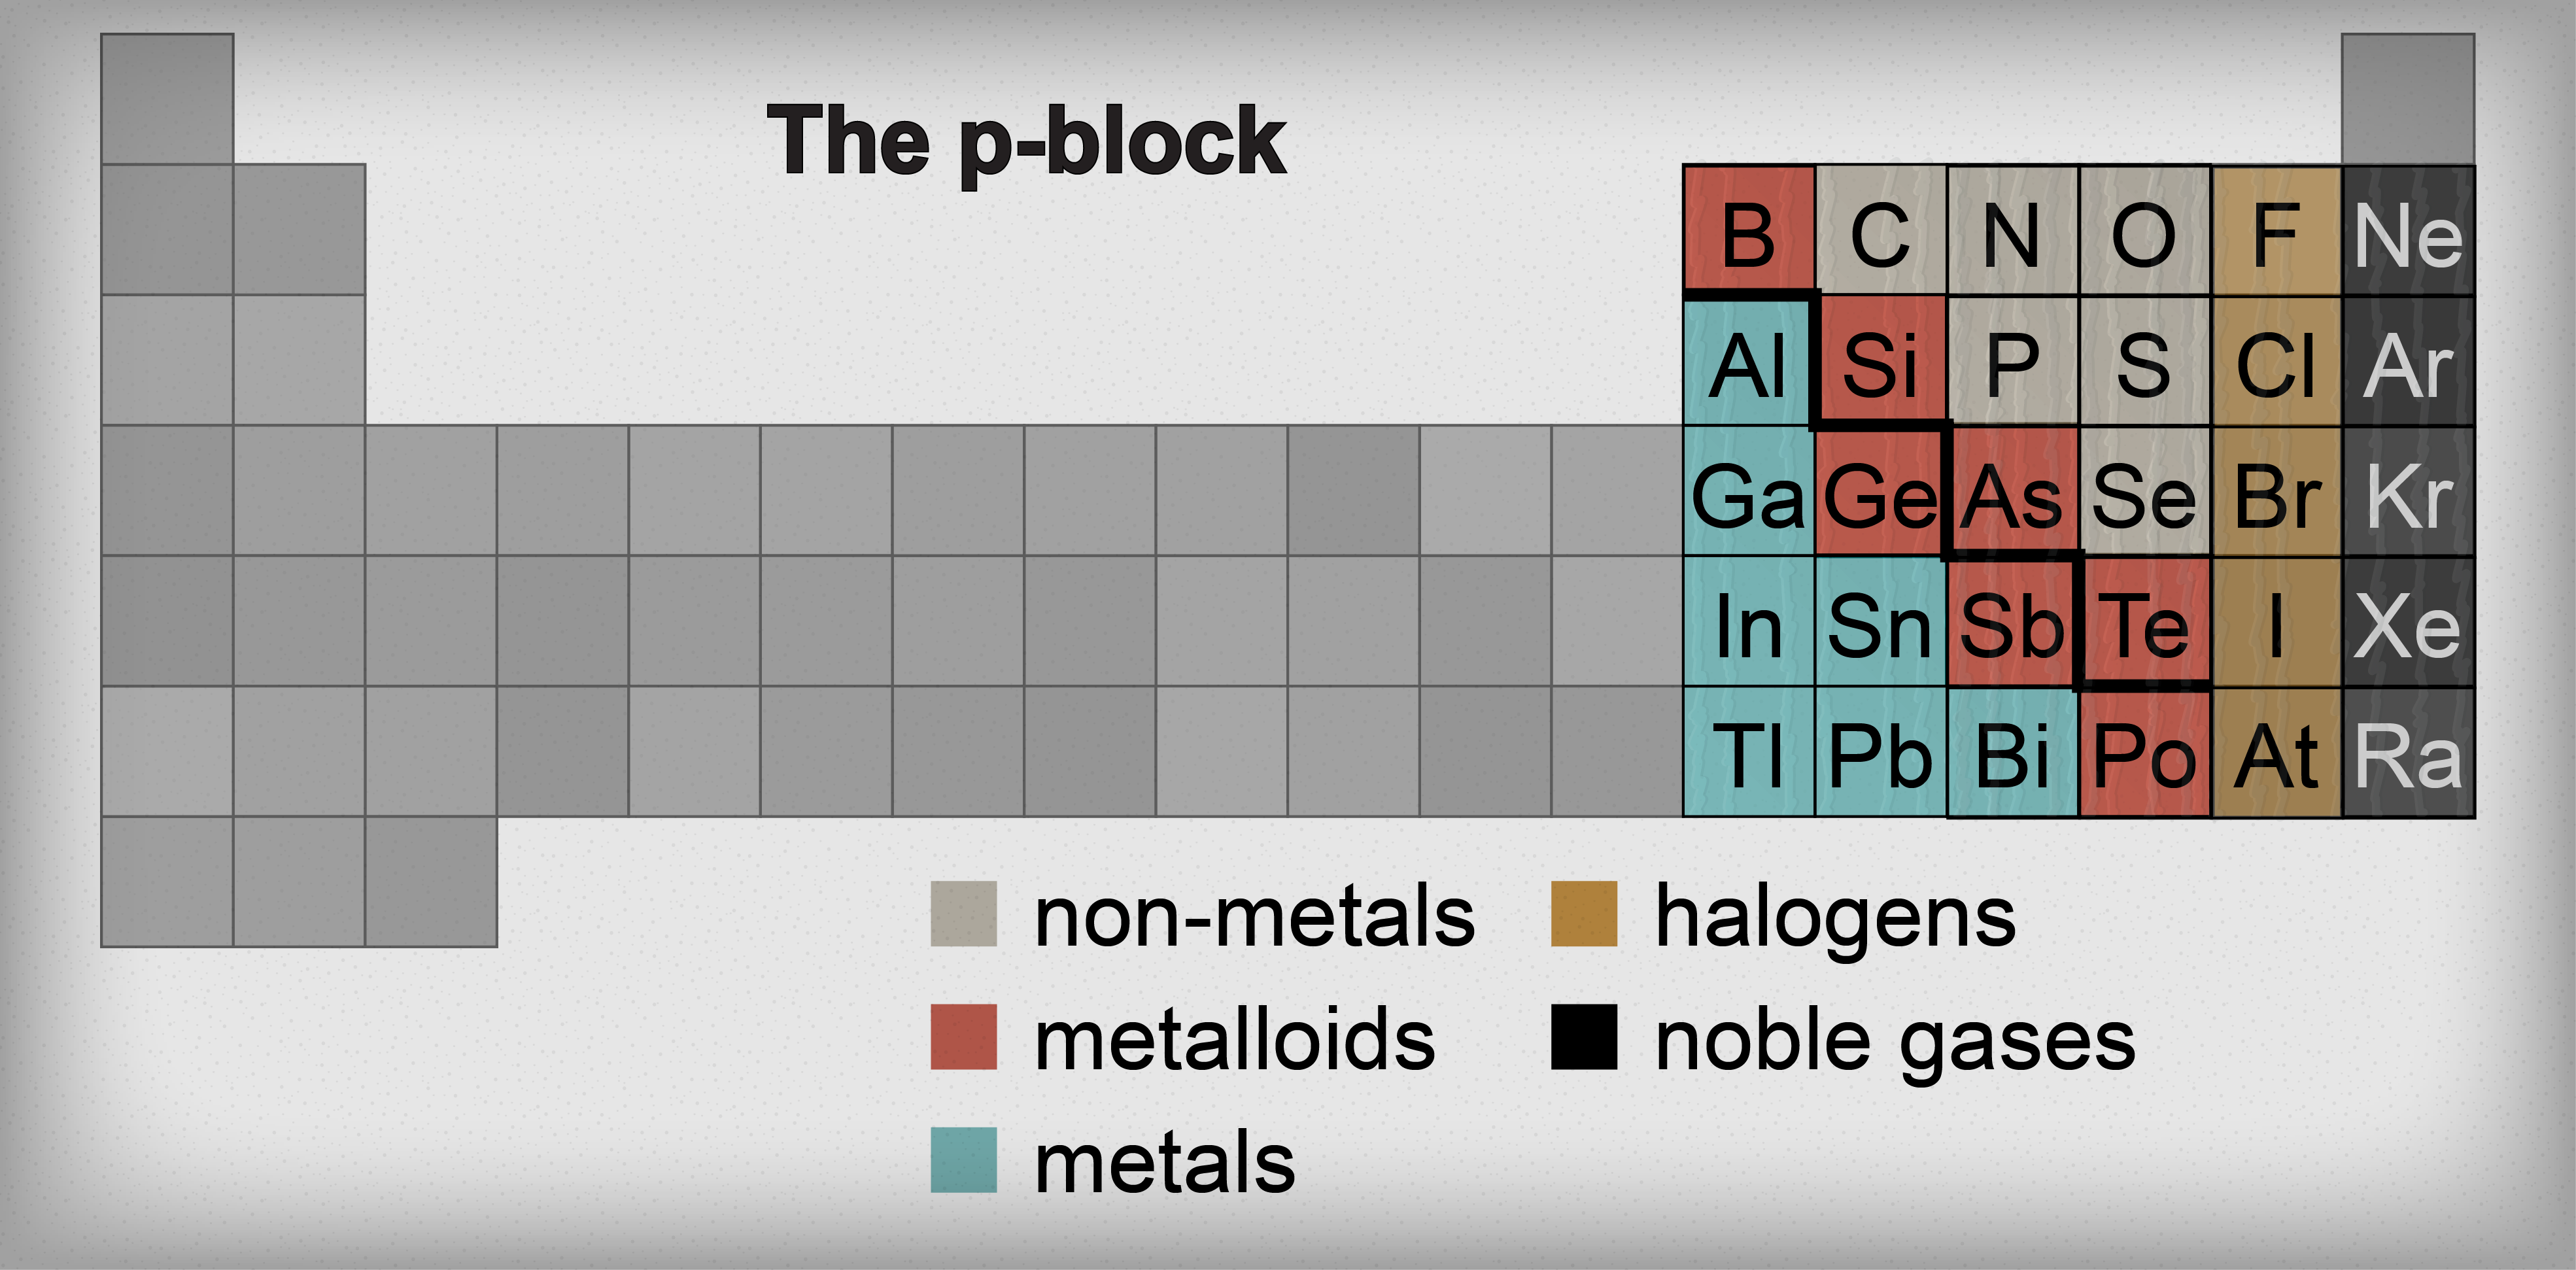 Chemistry metals metalloids and non metals shmoop chemistry in this section dividing elements into columns is so 2000 and late instead the p block is split into metals metalloids and non metals gamestrikefo Choice Image